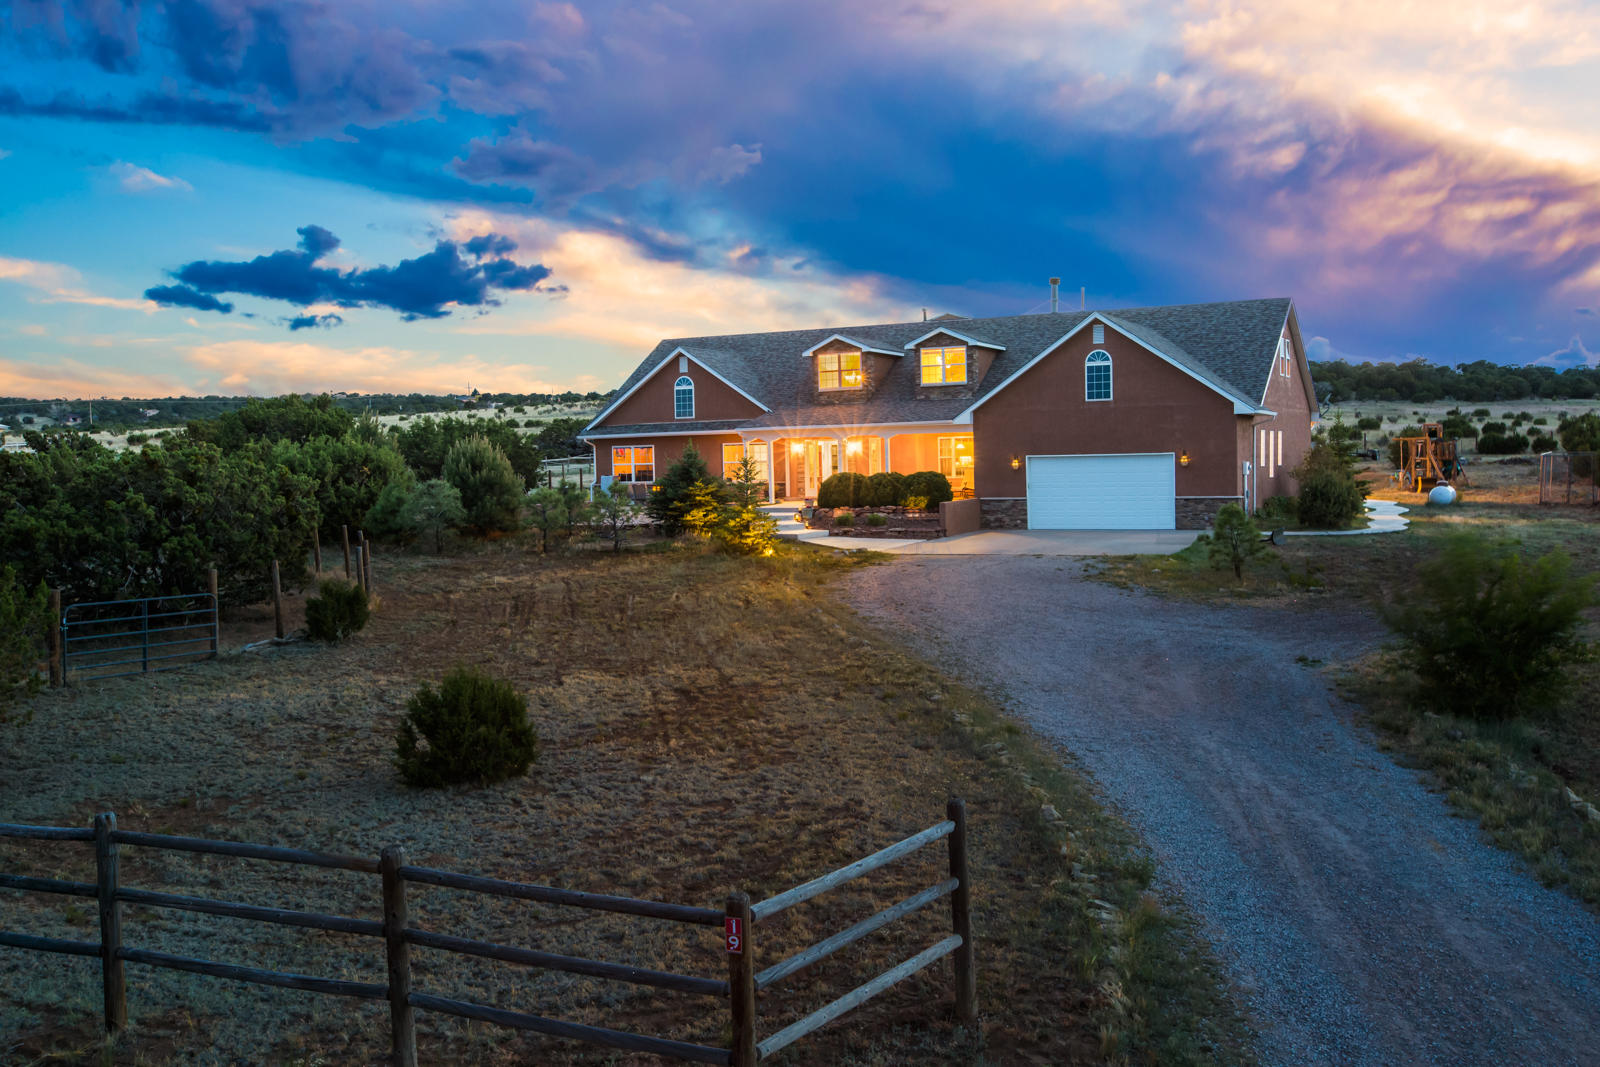 Come take a look at this beautiful mountain home! All the amenities you need on 2.5 acres of land that backs open space so no one will be building west of you. This house boasts wood floors, 2 furnaces, a wood stove, tandem 3 car garage with very high ceilings, brand new 100 MPH shingled roof, and stonework throughout. Enjoy a quiet evening or have a party on the front large entertaining area. This house has tons of room including office spaces upstairs and two large rooms that can be used for game rooms, theater rooms, or even a home gym. This home has so so much to offer there is not enough room to list it all.